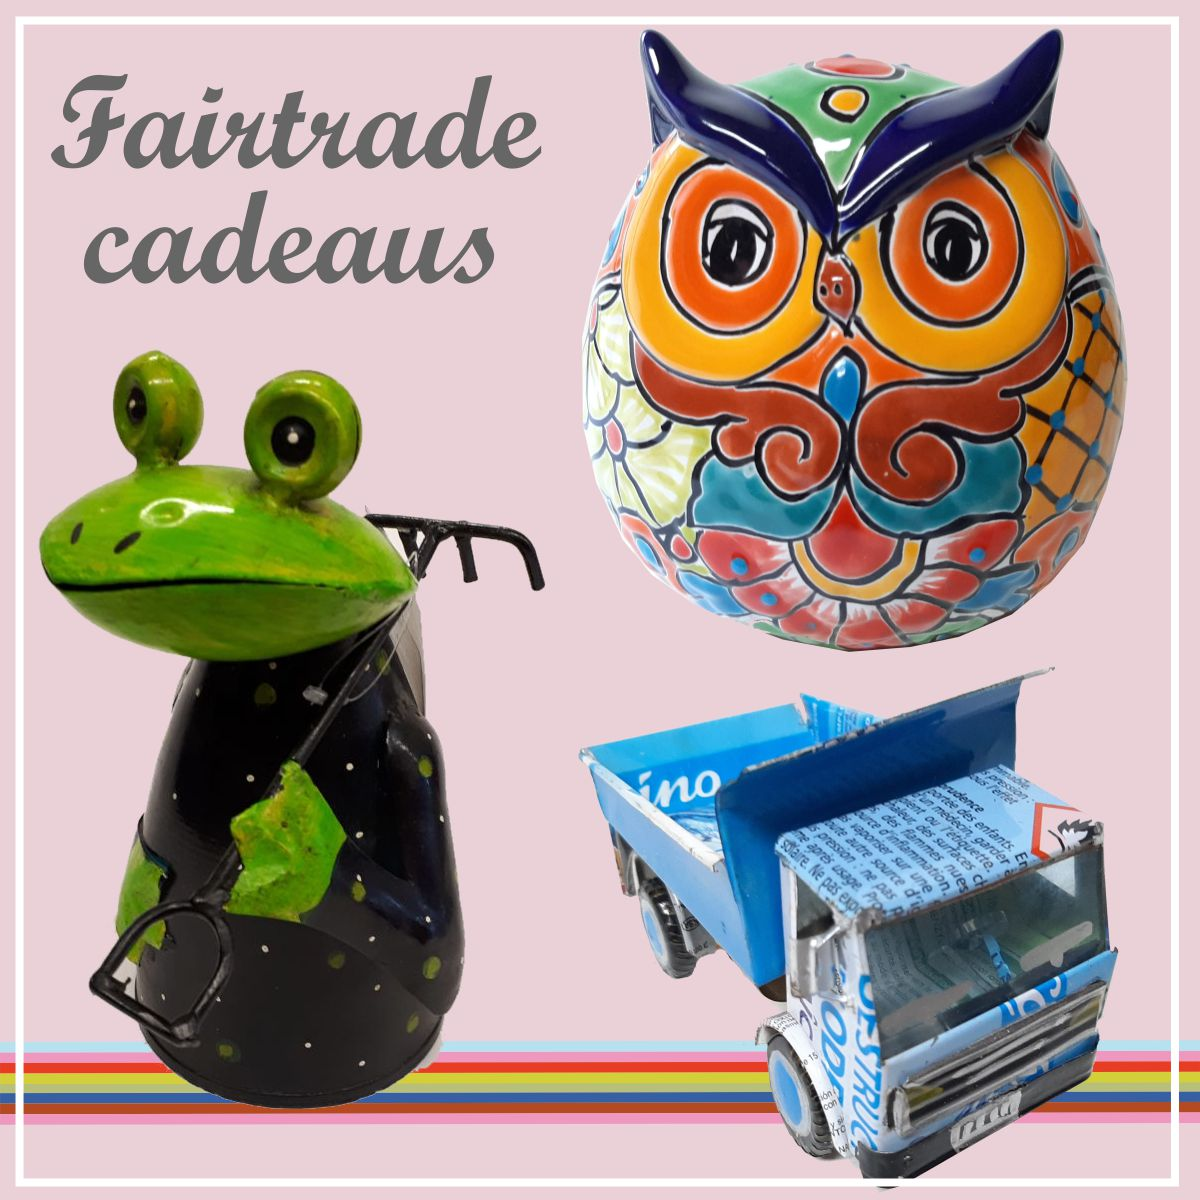 Fairtrade cadeaus bij FAME musthaves